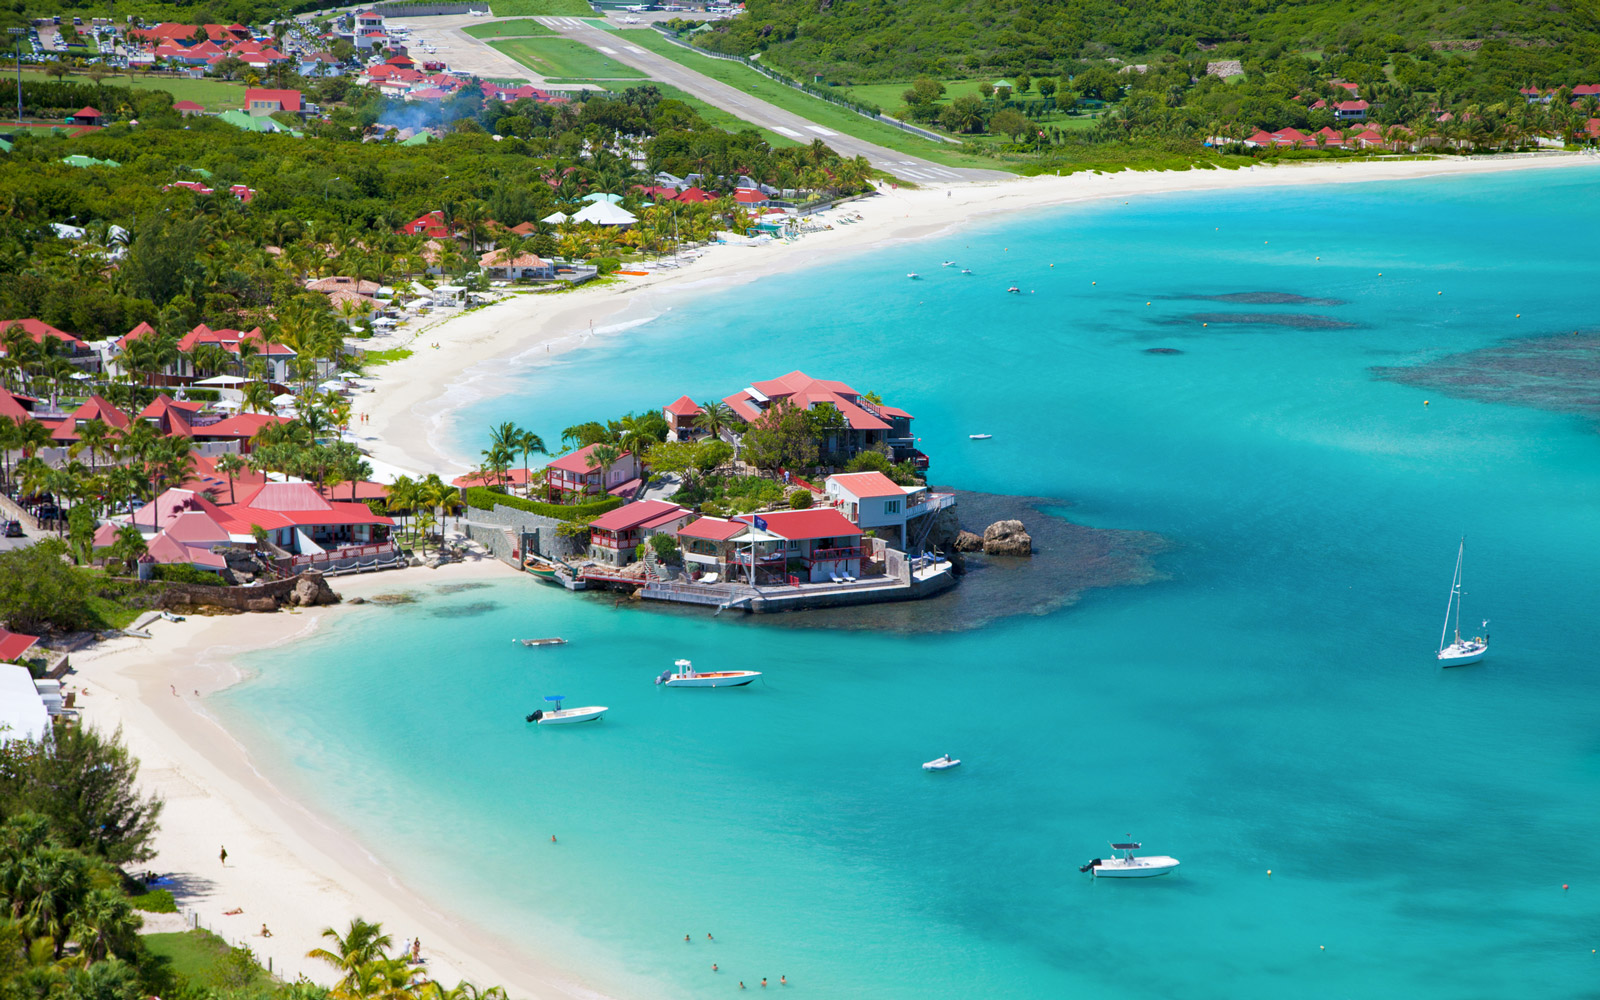 aerial view of Eden Rock at St. Jean Bay, St. Barths, French West Indies